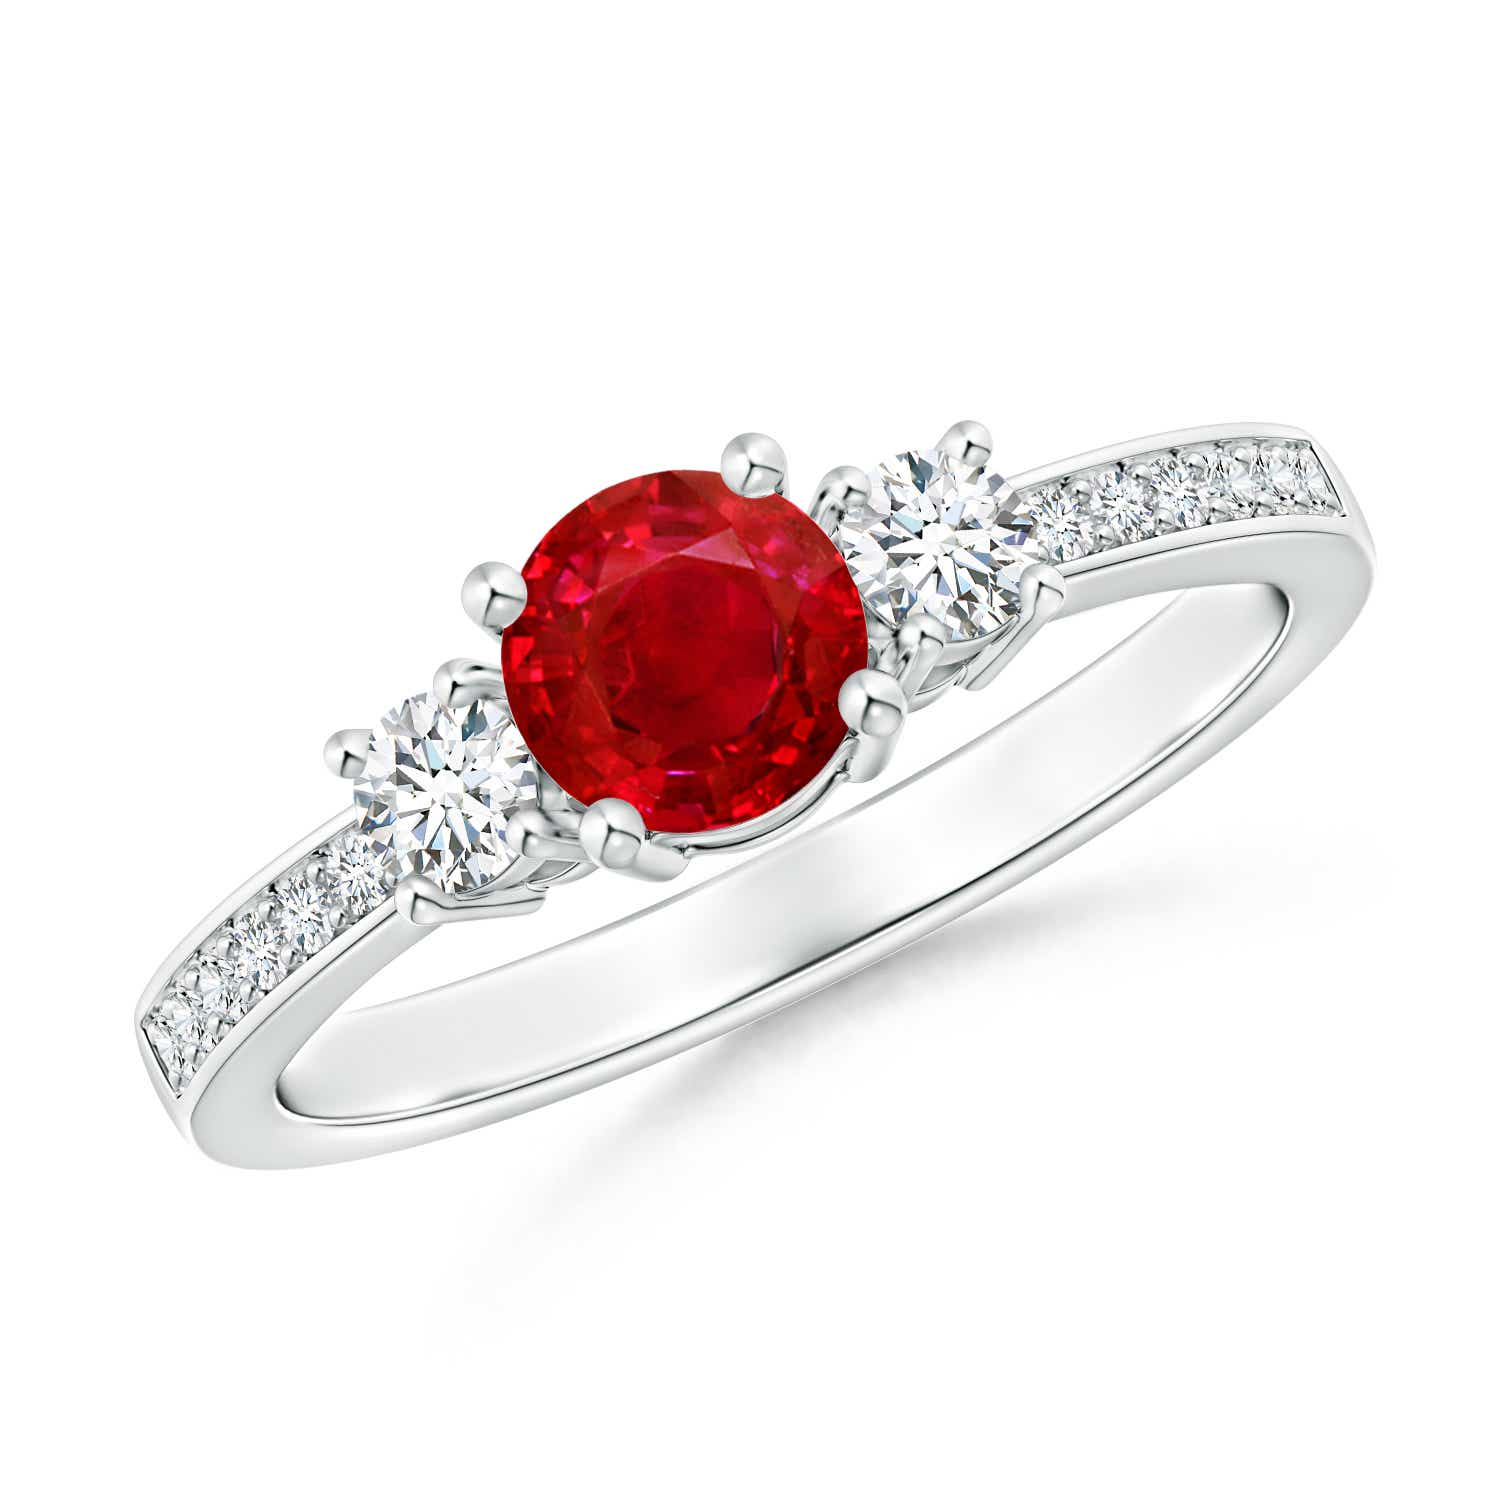 Angara Classic Diamond Halo Ruby Engagement Ring in 14k White Gold